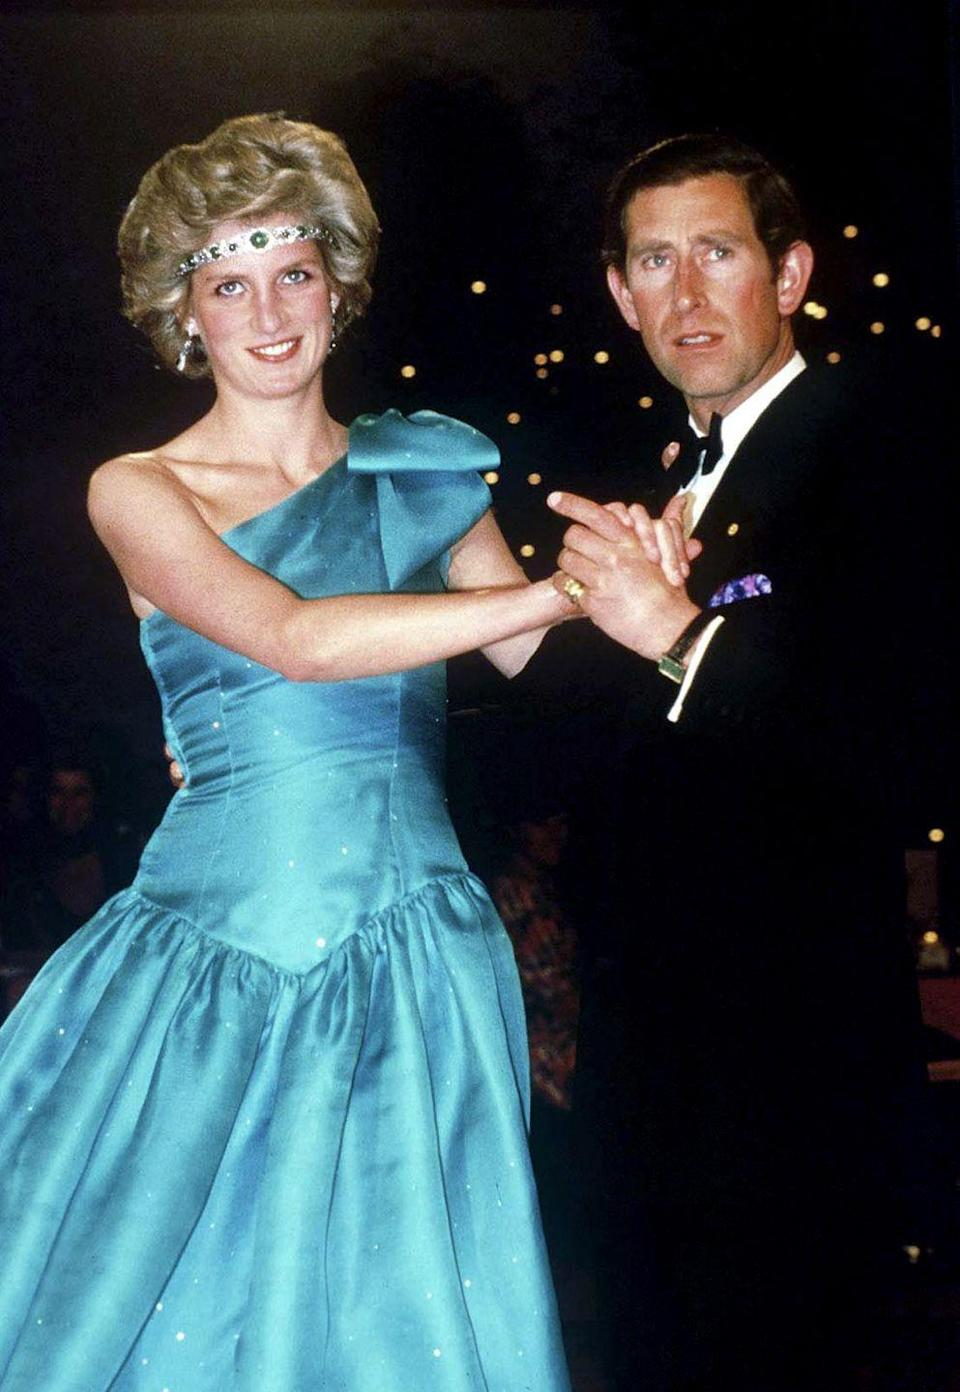 "<p>What to do with a gorgeous emerald and diamond choker loaned from the Queen? Wear it as a headband. Perhaps not what the Queen had in mind, but <a href=""https://people.com/royals/princess-diana-jewelry-collection-tiaras/#the-art-deco-emerald-choker"" rel=""nofollow noopener"" target=""_blank"" data-ylk=""slk:it worked"" class=""link rapid-noclick-resp"">it worked</a> — and showed Diana's individual sense of style to perfection. Not to mention, maybe it demonstrated a teeny bit of royal rebellion, too? </p>"